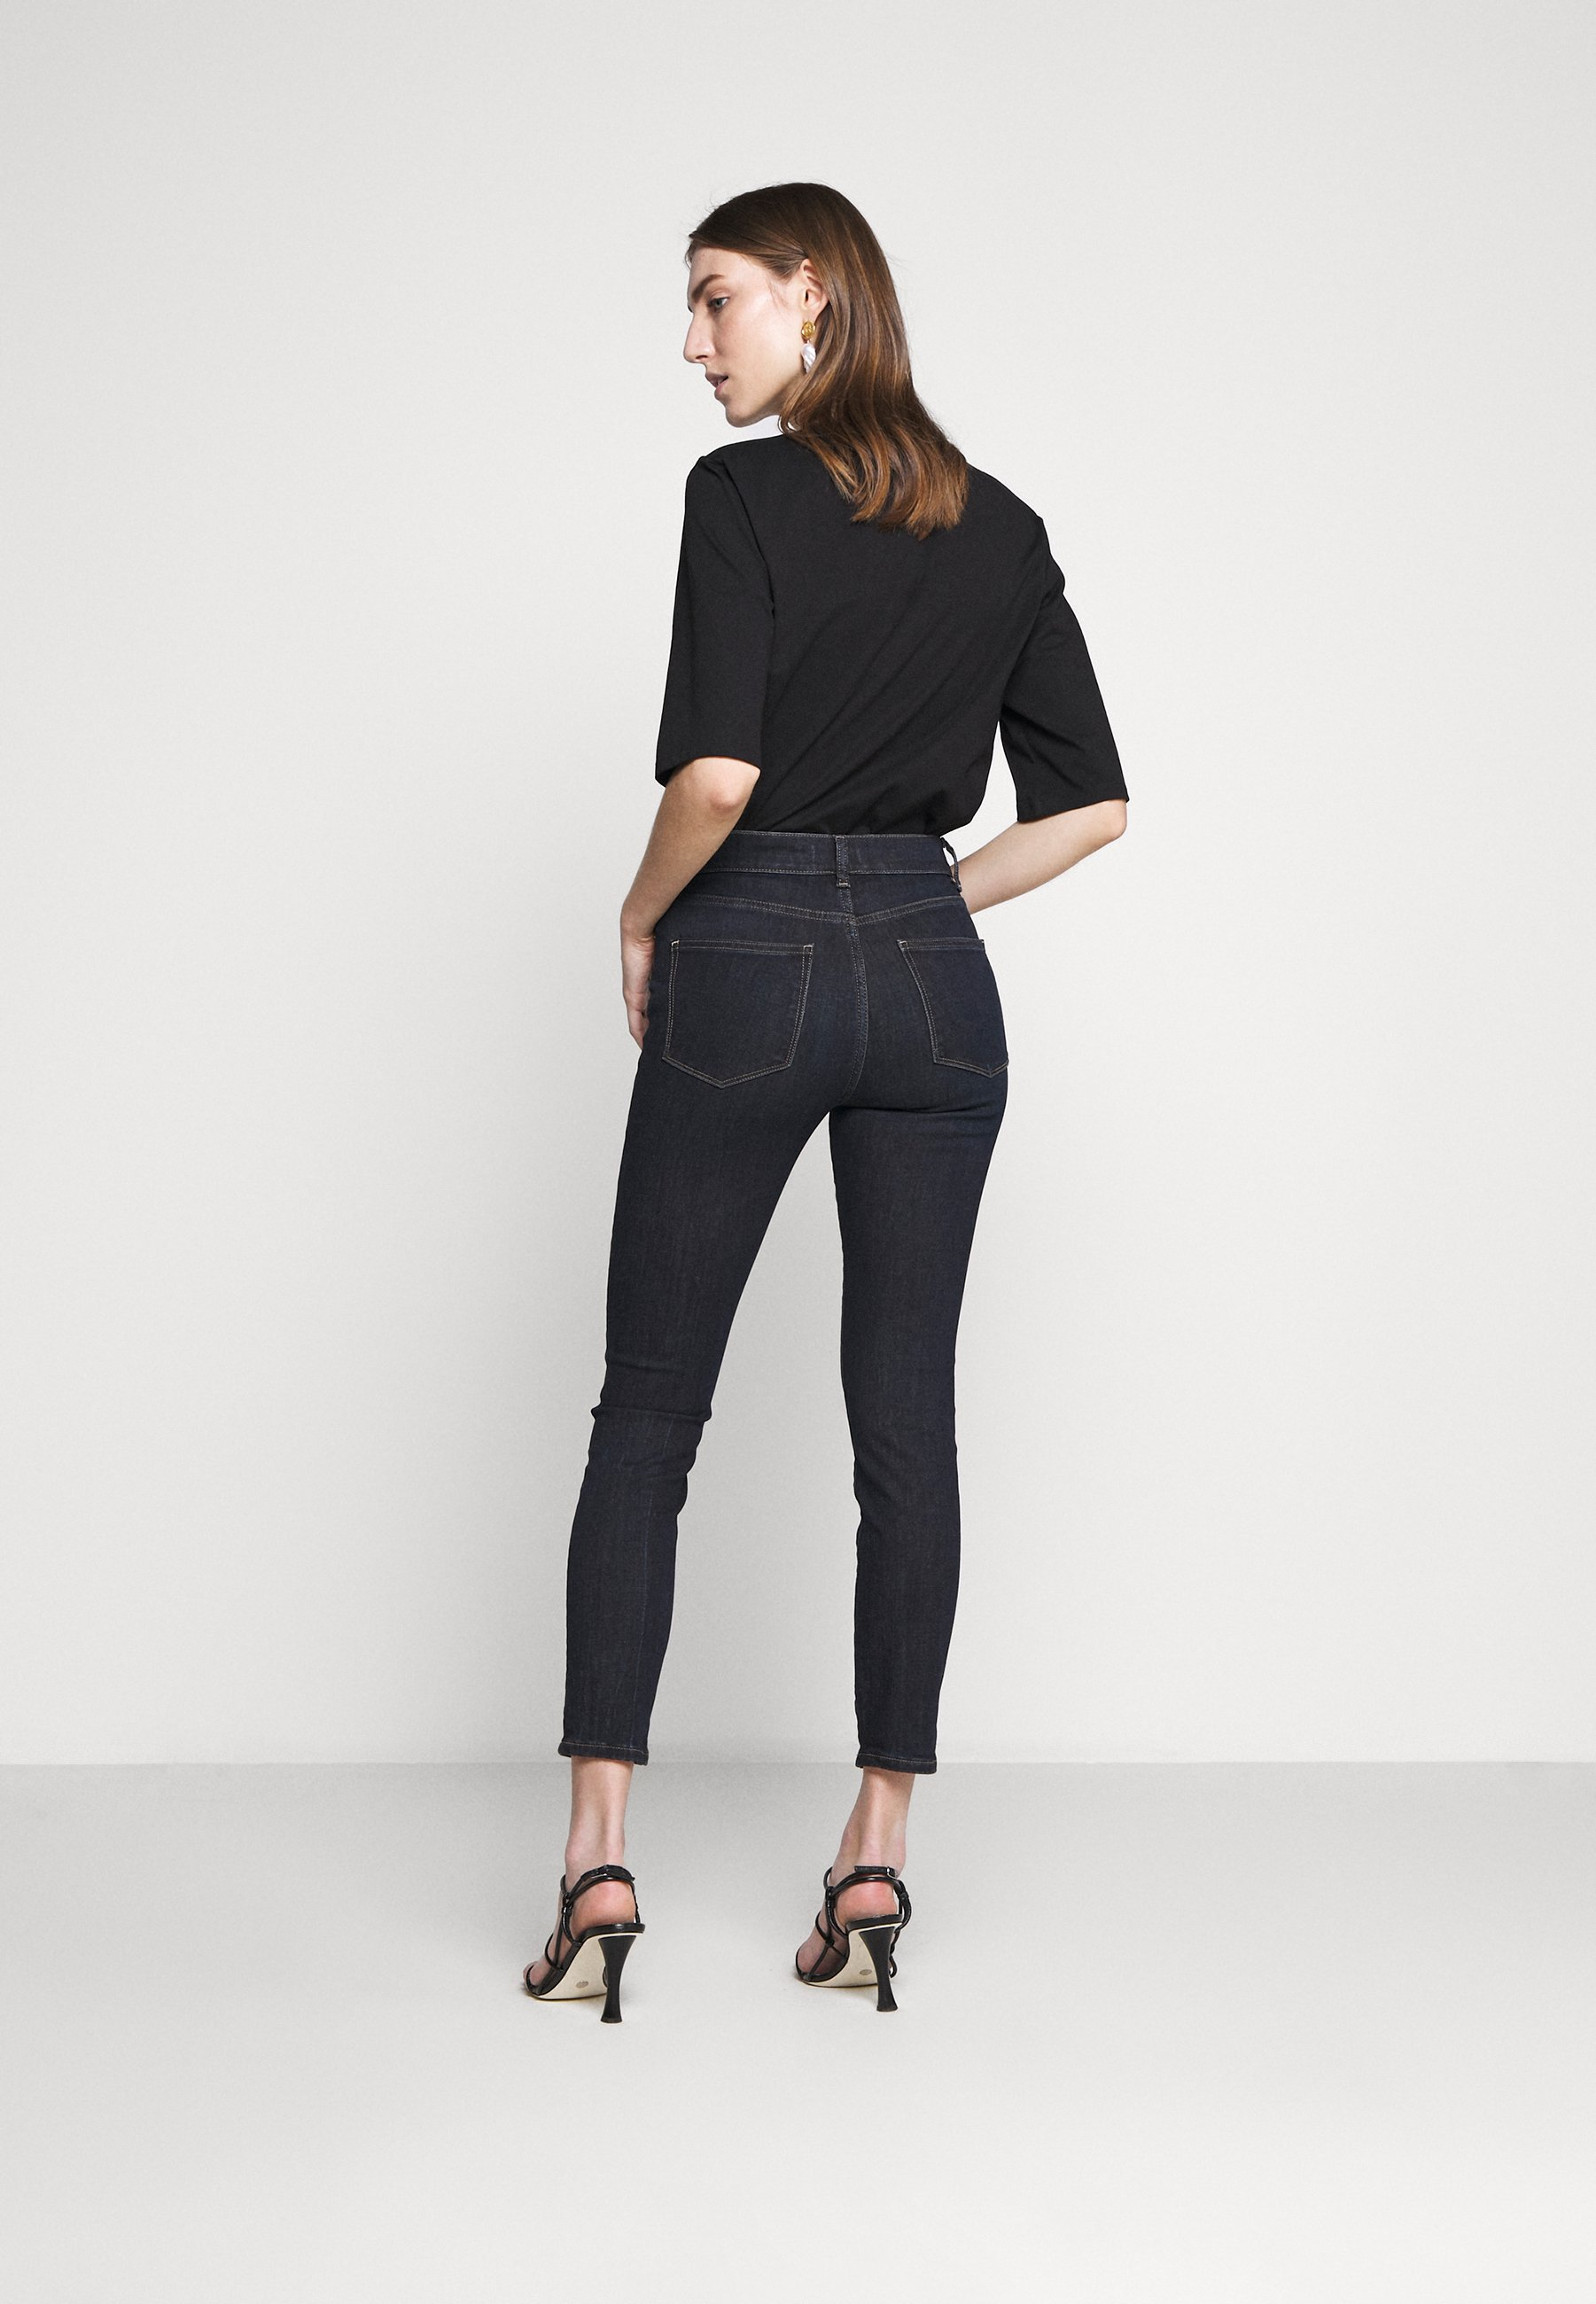 Best Place Women's Clothing DL1961 FARROW Jeans Skinny Fit willoughby udE2uAOjy